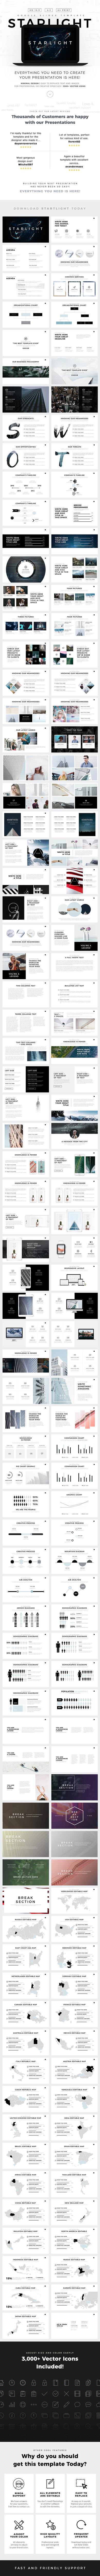 Starlight Minimal Google Slides Template Pitch Deck - Google Slides Presentation Templates